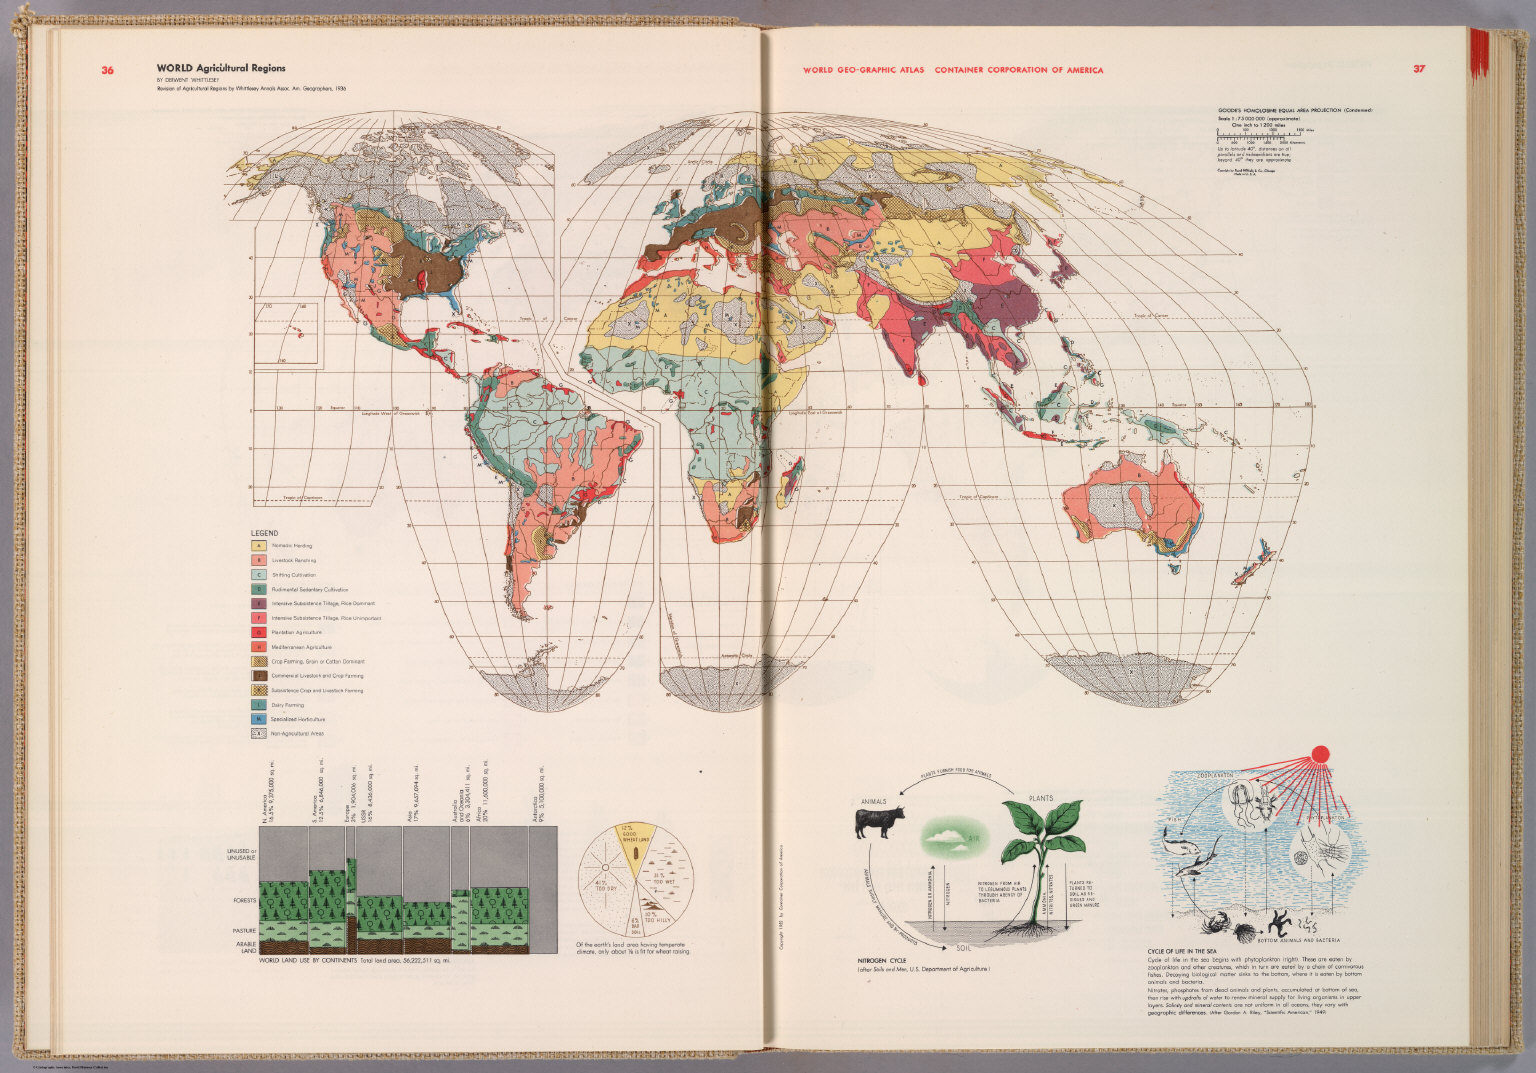 World agricultural regions david rumsey historical map collection world agricultural regions publicscrutiny